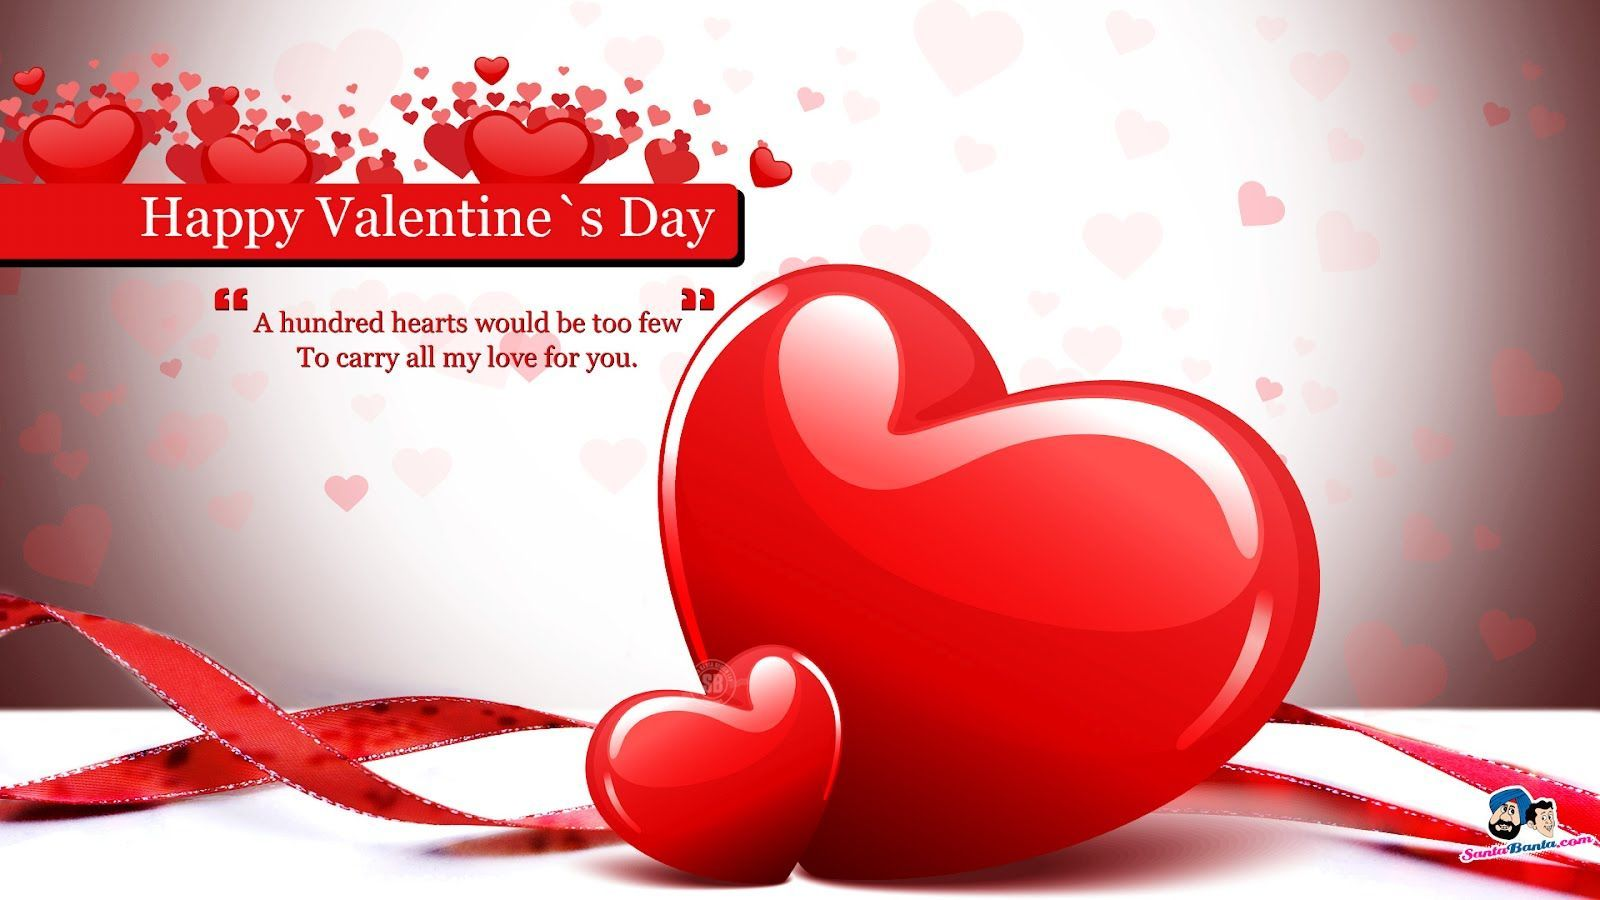 Love Quotes For Valentines Day Cards Happy Valentines Day Quotes Quote Valentines Day Valentines Day